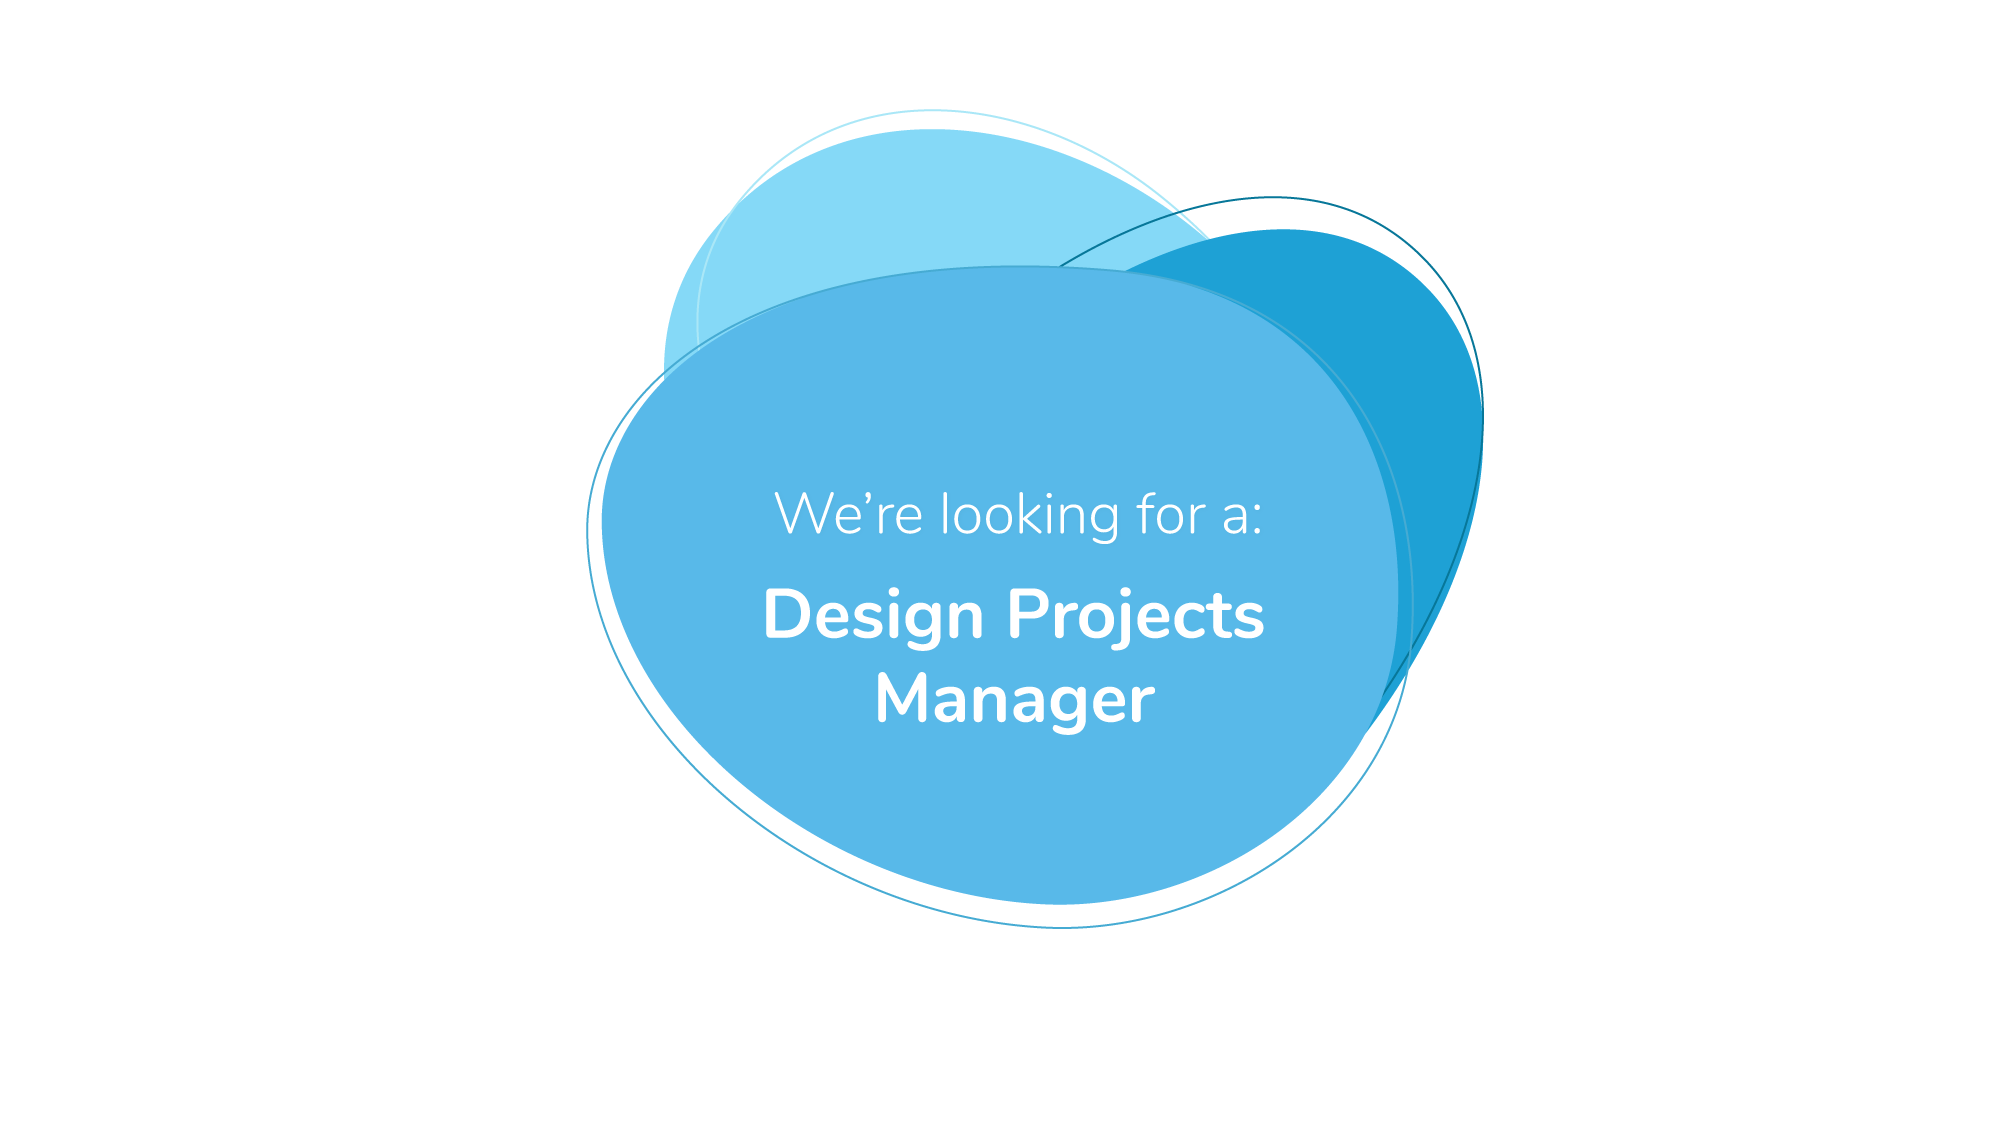 Design Projects Manager